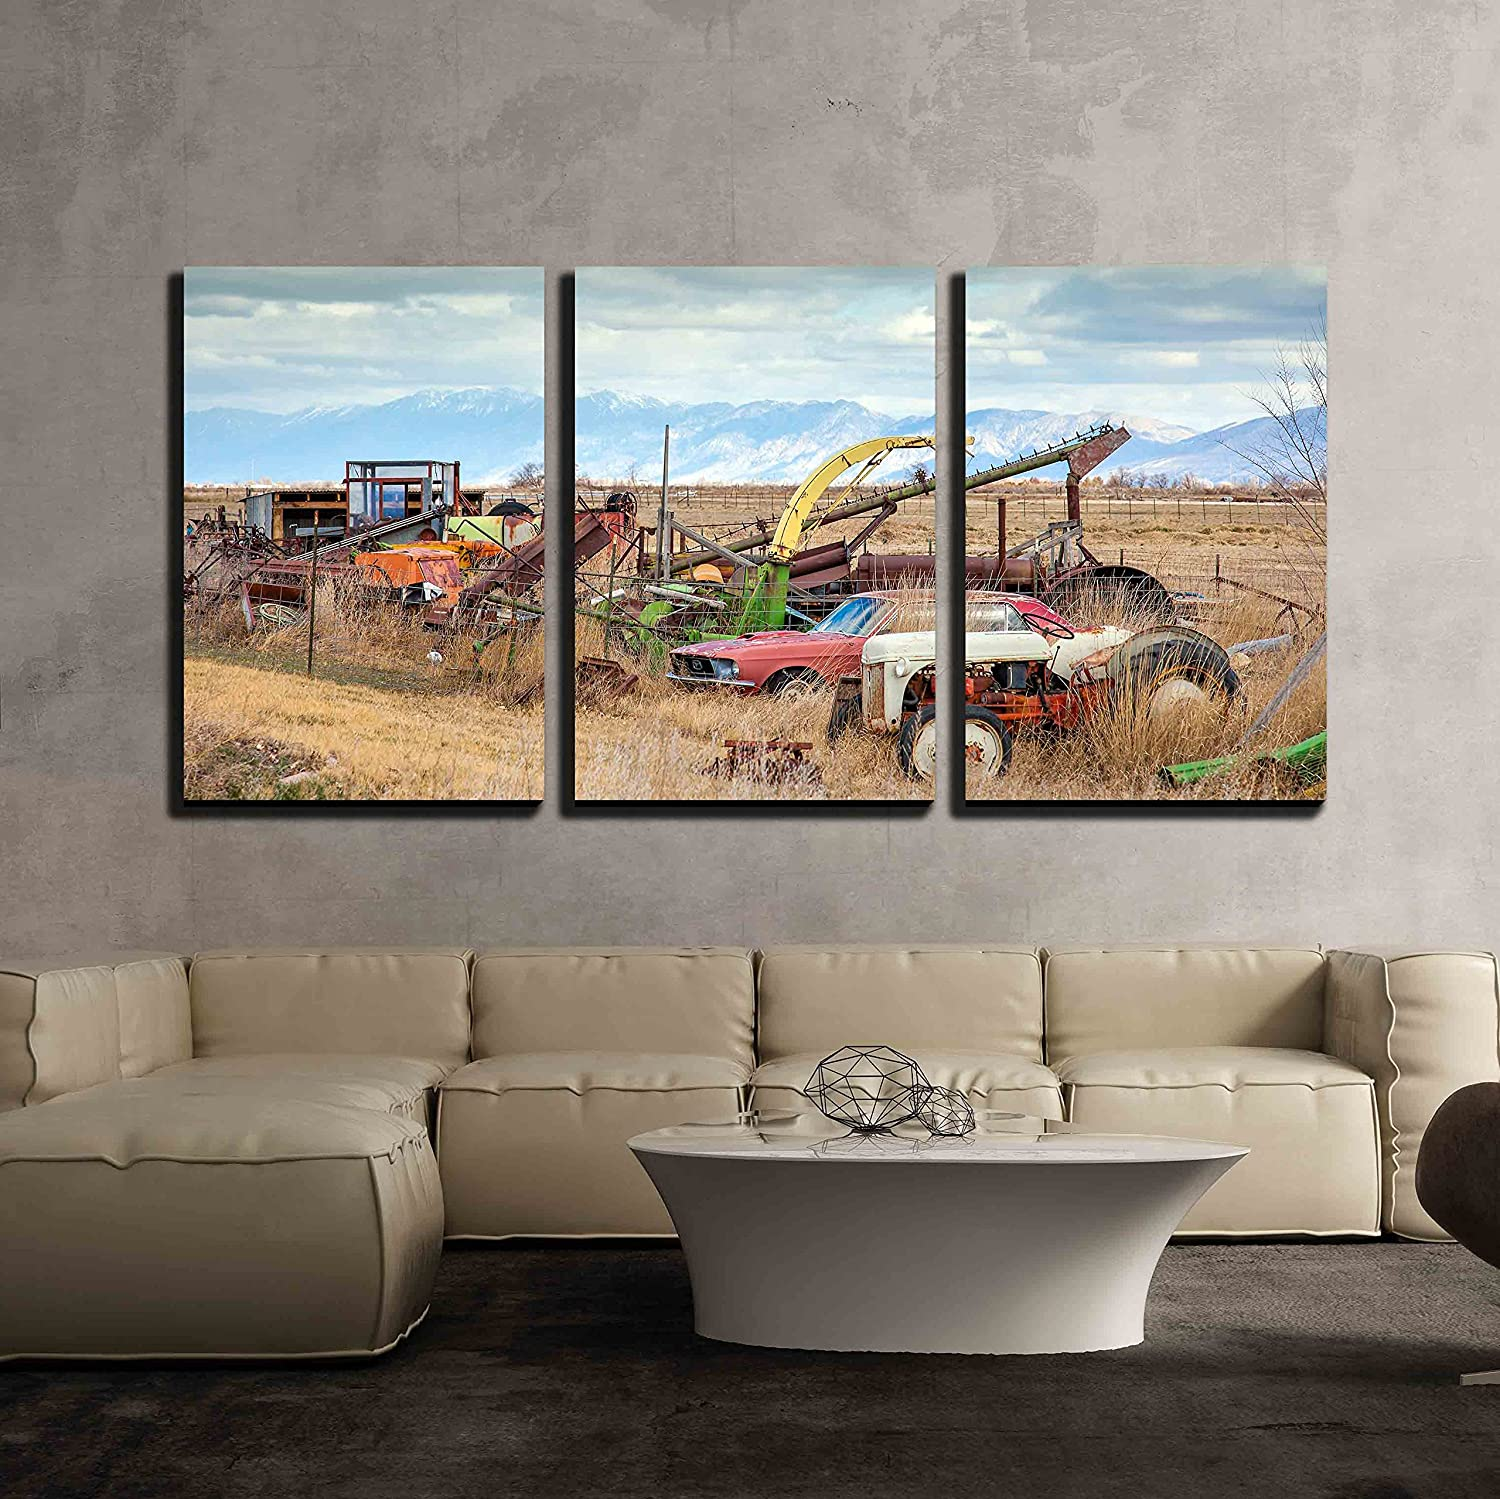 Wall26 art prints framed art canvas prints greeting wall26 3 piece canvas wall art vintage salt lake in salt lake city utah modern home decor stretched and framed ready to hang 24x36x3 panels kristyandbryce Image collections